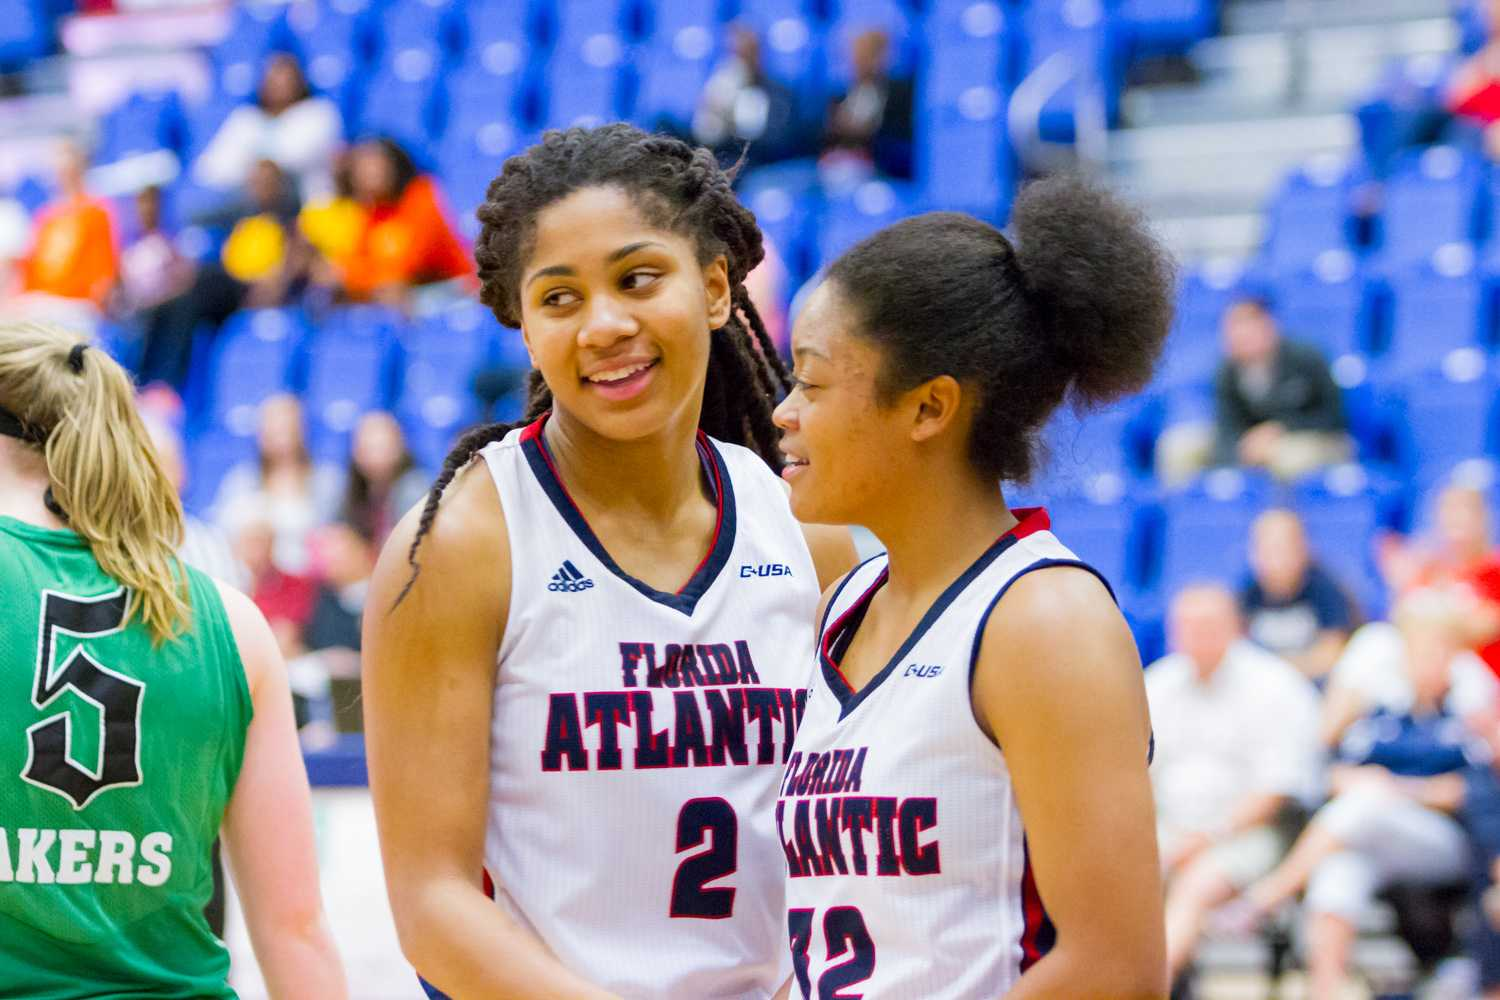 Guards Shaneese Bailey (2) and Malia Kency (32) smile during a dead ball.